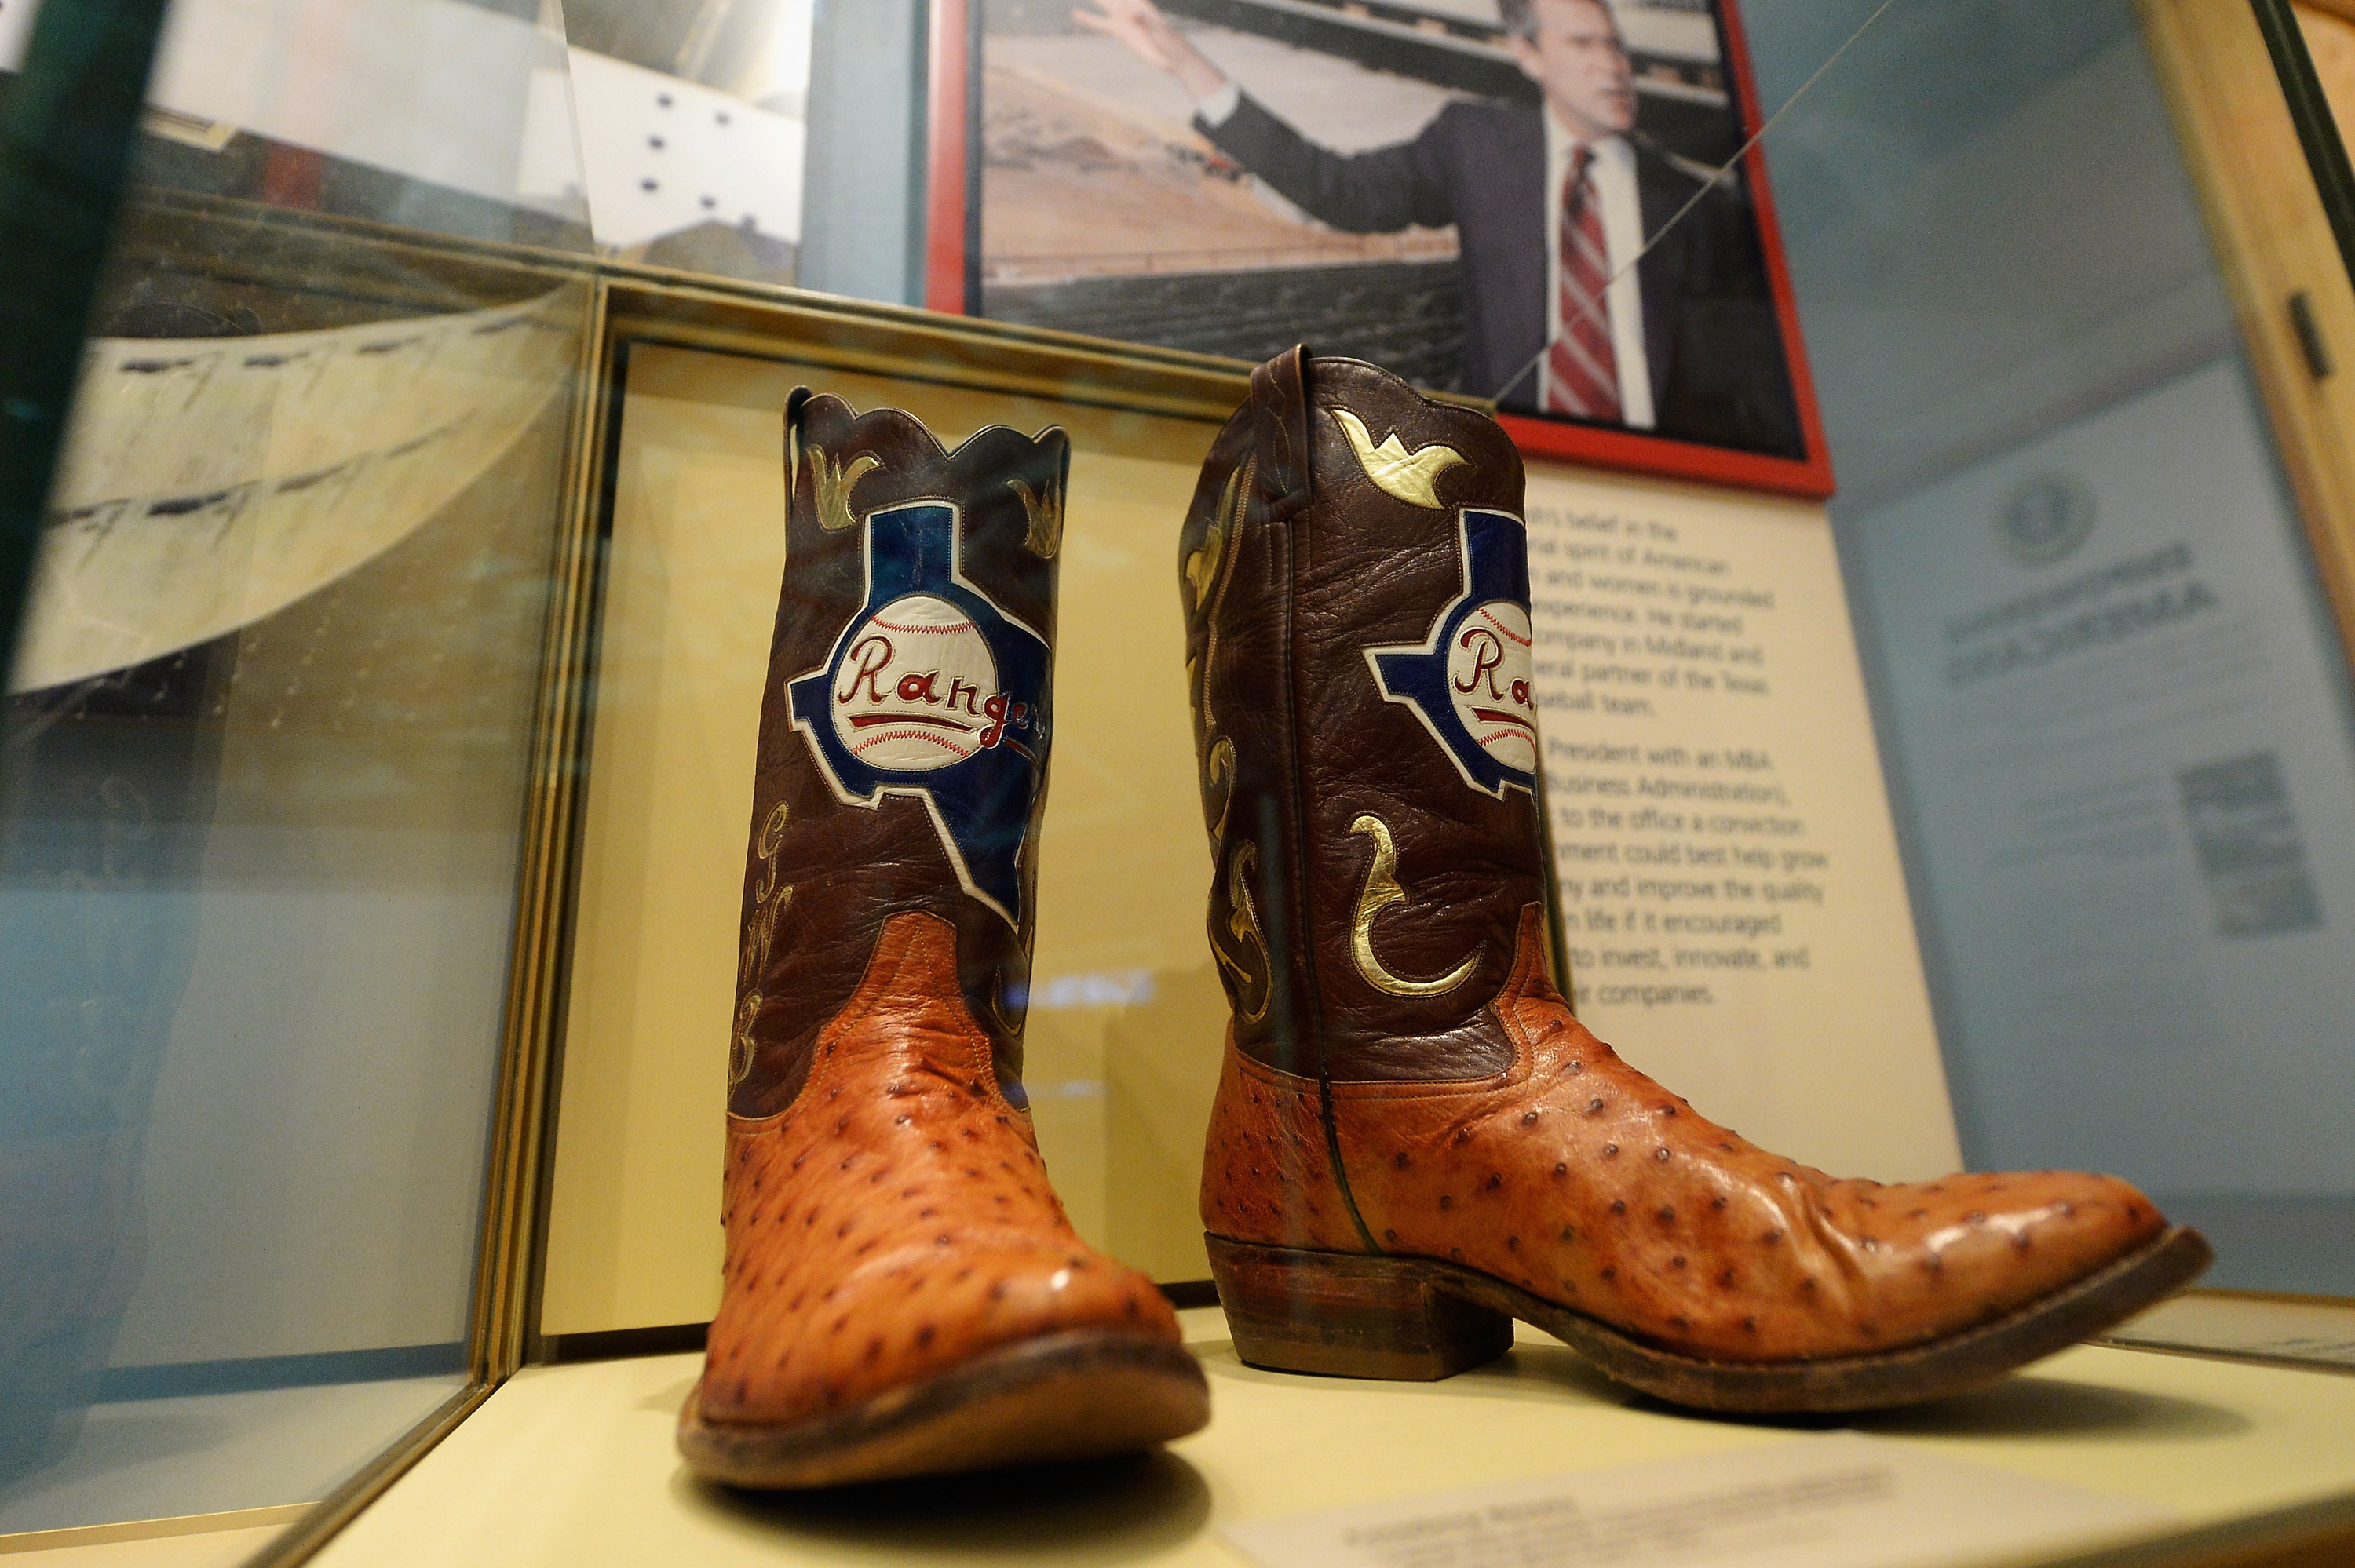 Boots commemorate George W. Bush's tenure as general managing partner of the Texas Rangers.